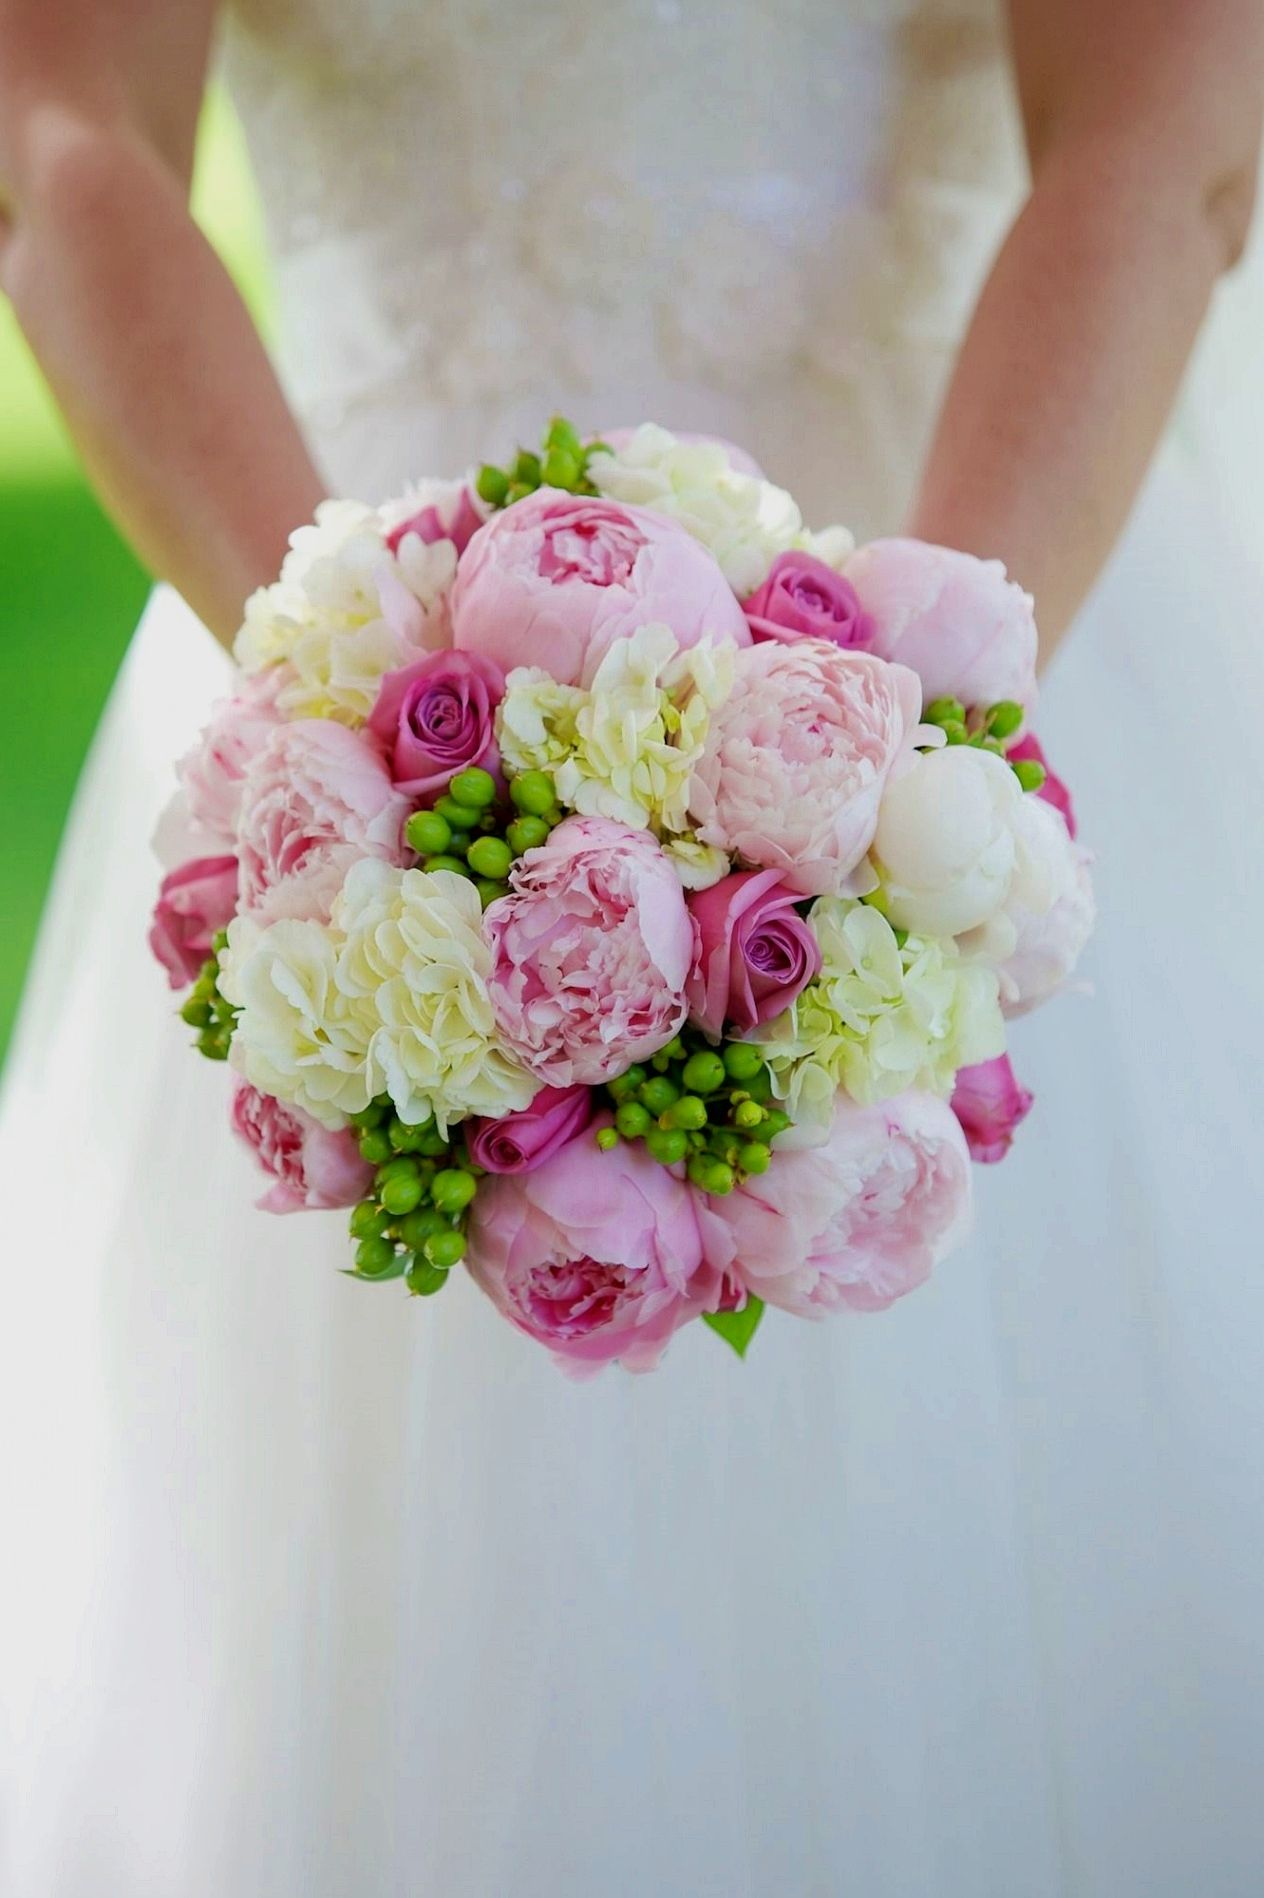 Elegant wedding flowers tips Do you want romantic wedding